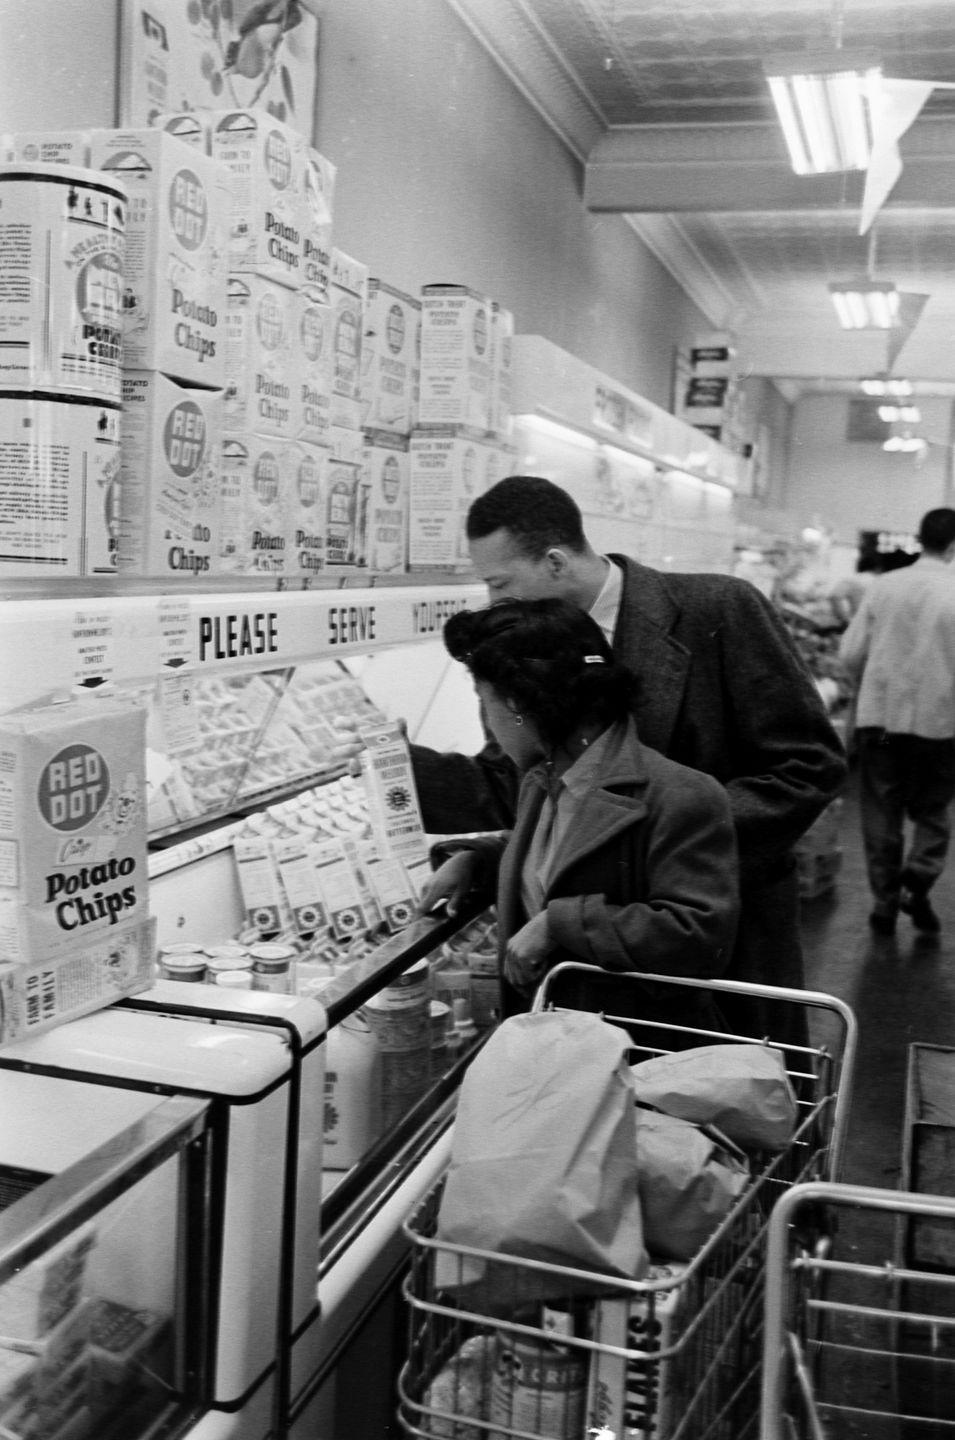 """<p>Companies focused on opening stores in suburban areas, specifically white neighborhoods over predominately Black communities, which some have <a href=""""https://www.cnn.com/2020/06/16/business/grocery-stores-access-race-inequality/index.html"""" rel=""""nofollow noopener"""" target=""""_blank"""" data-ylk=""""slk:referred to as &quot;supermarket redlining.&quot;"""" class=""""link rapid-noclick-resp"""">referred to as """"supermarket redlining.""""</a> As a result, it was harder and more expensive for people in Black neighborhoods to access food, especially fresh, healthy food.</p>"""